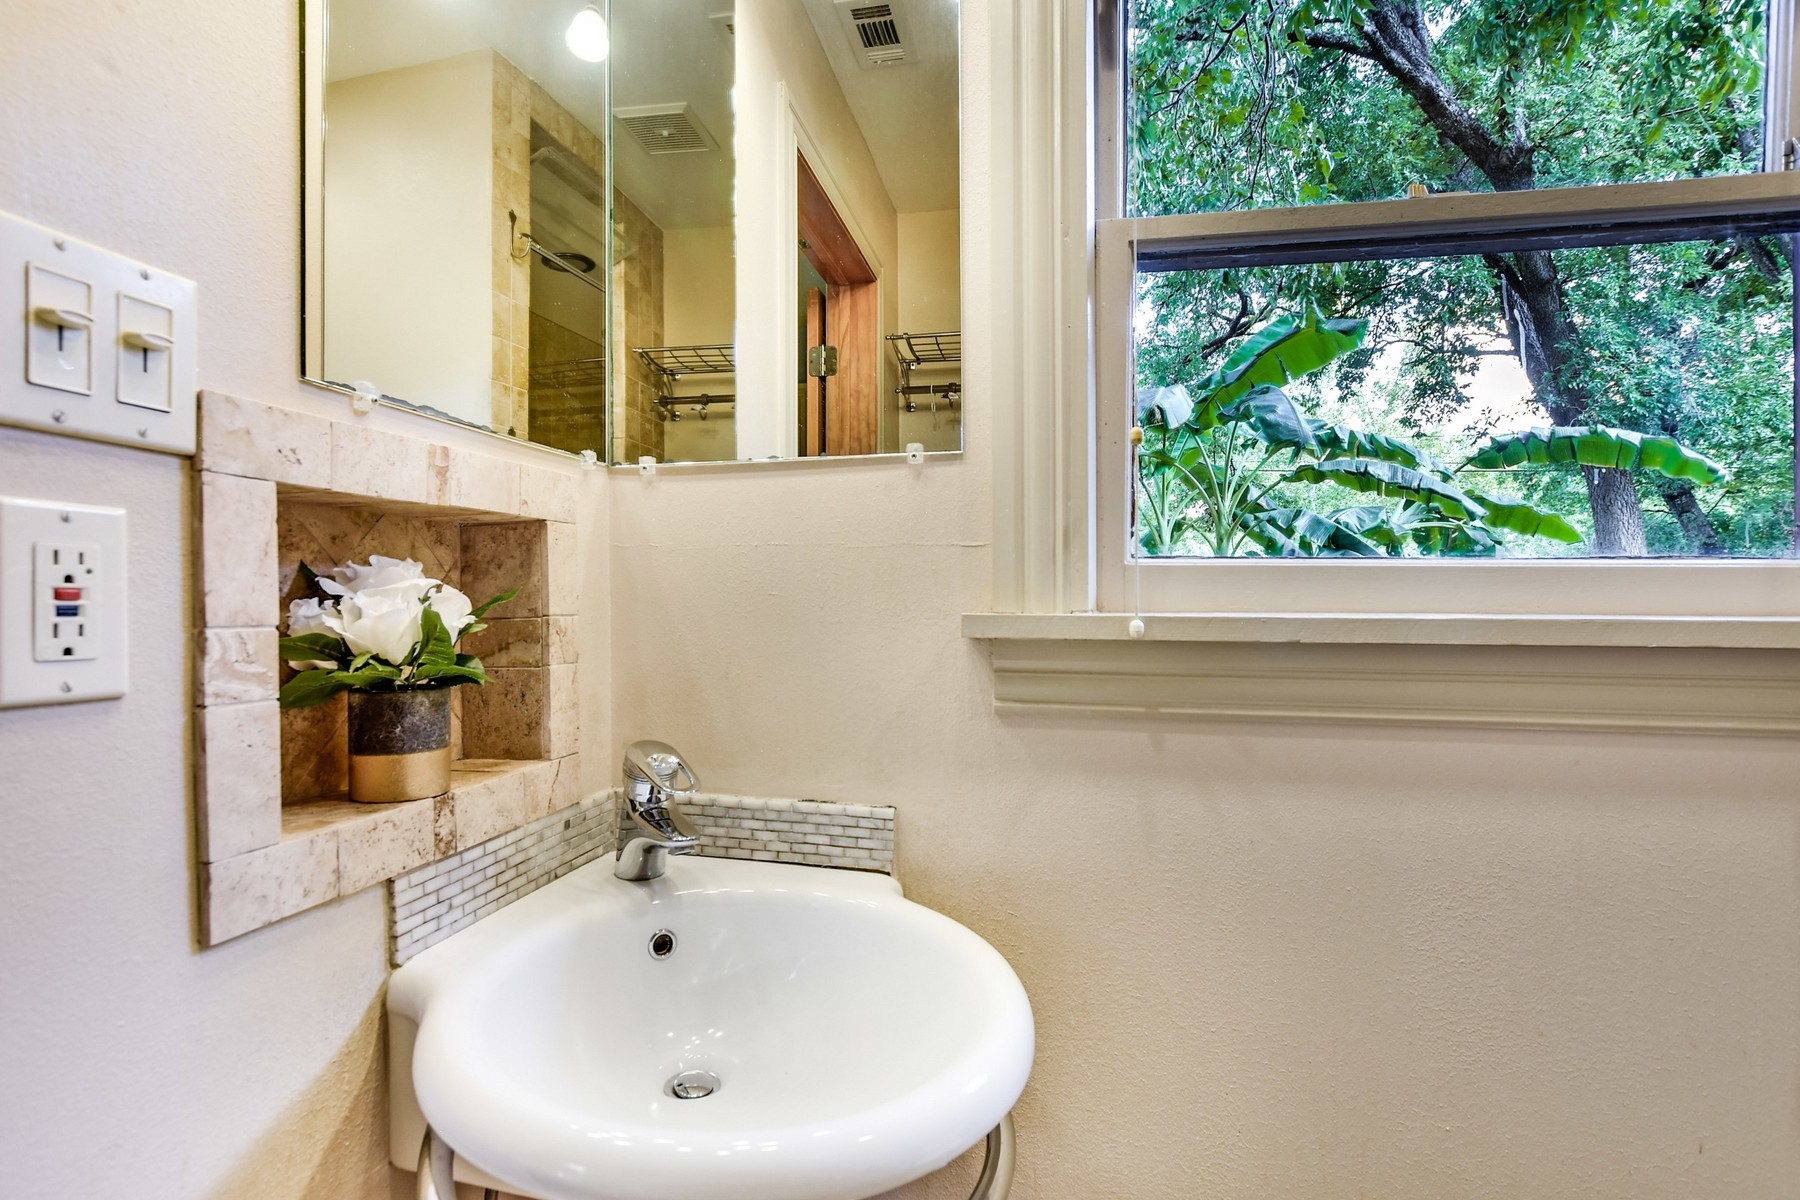 Additional photo for property listing at Rare Large Lot in Cherrywood 3506 Werner Ave Austin, Texas 78722 Estados Unidos